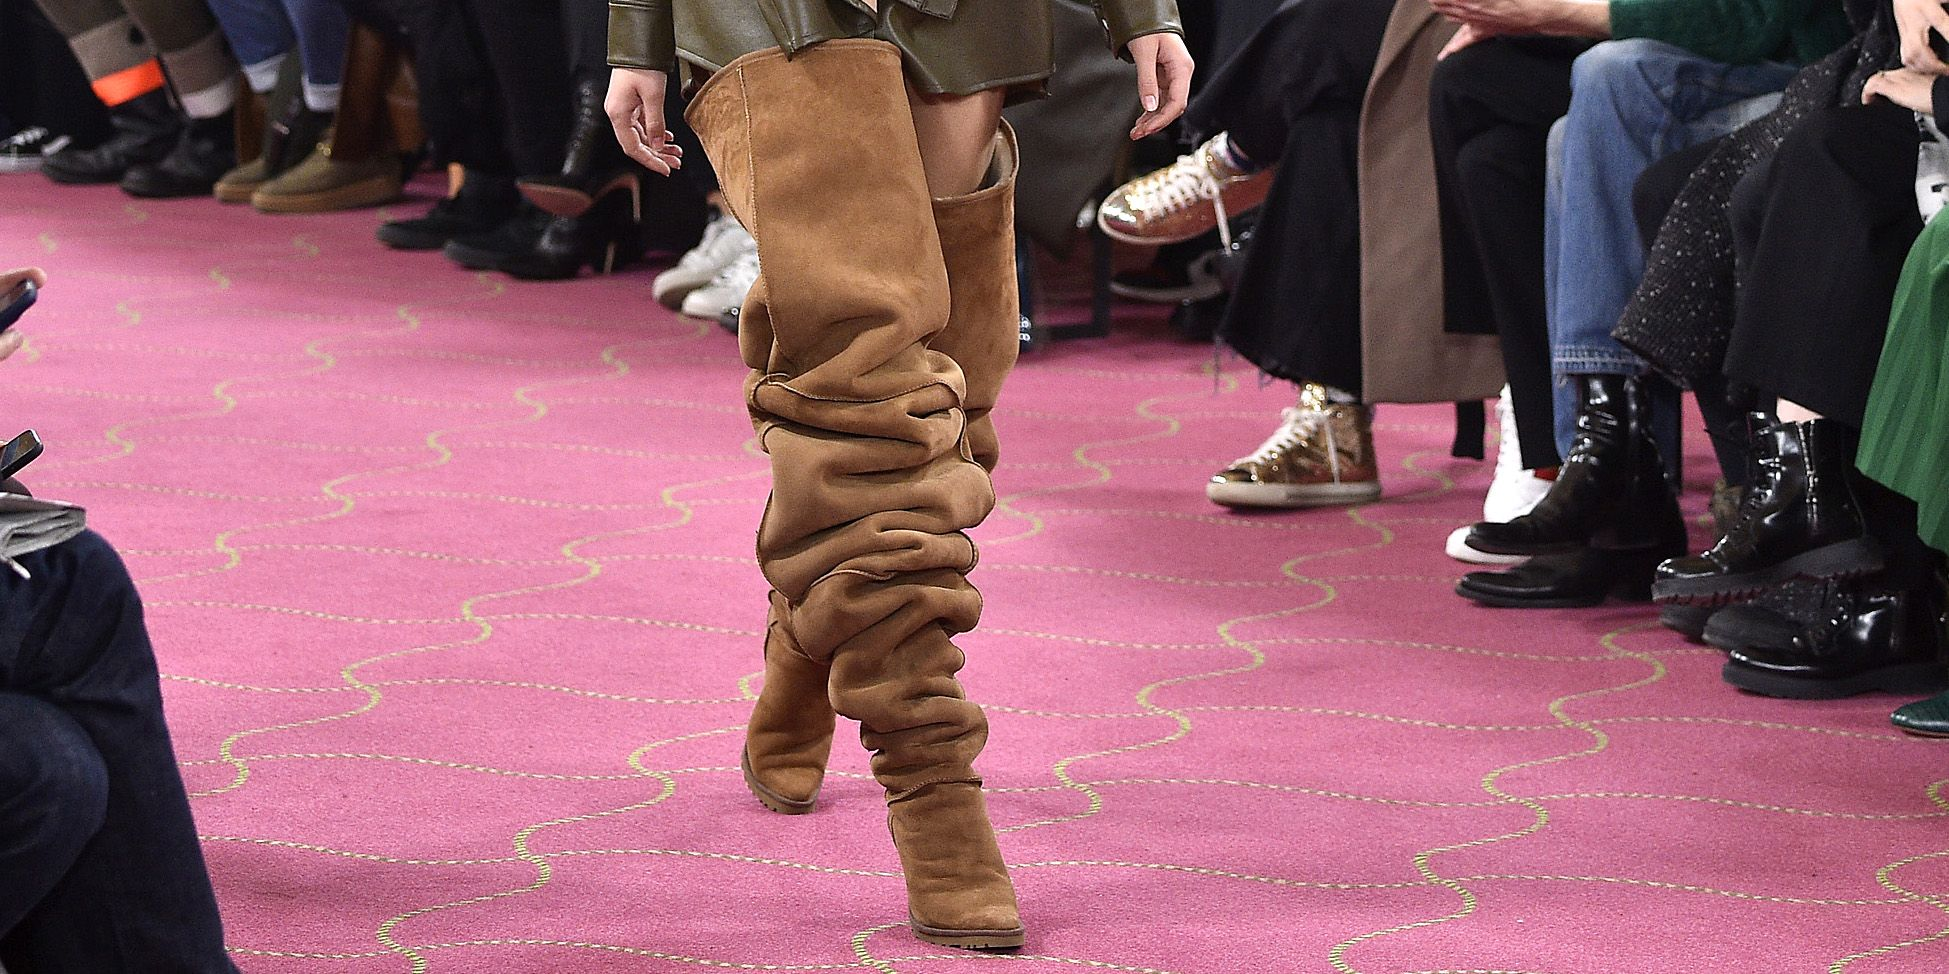 Thigh-High Ugg Boots Paris Fashion Week - Over-the-Knee Ugg Boots